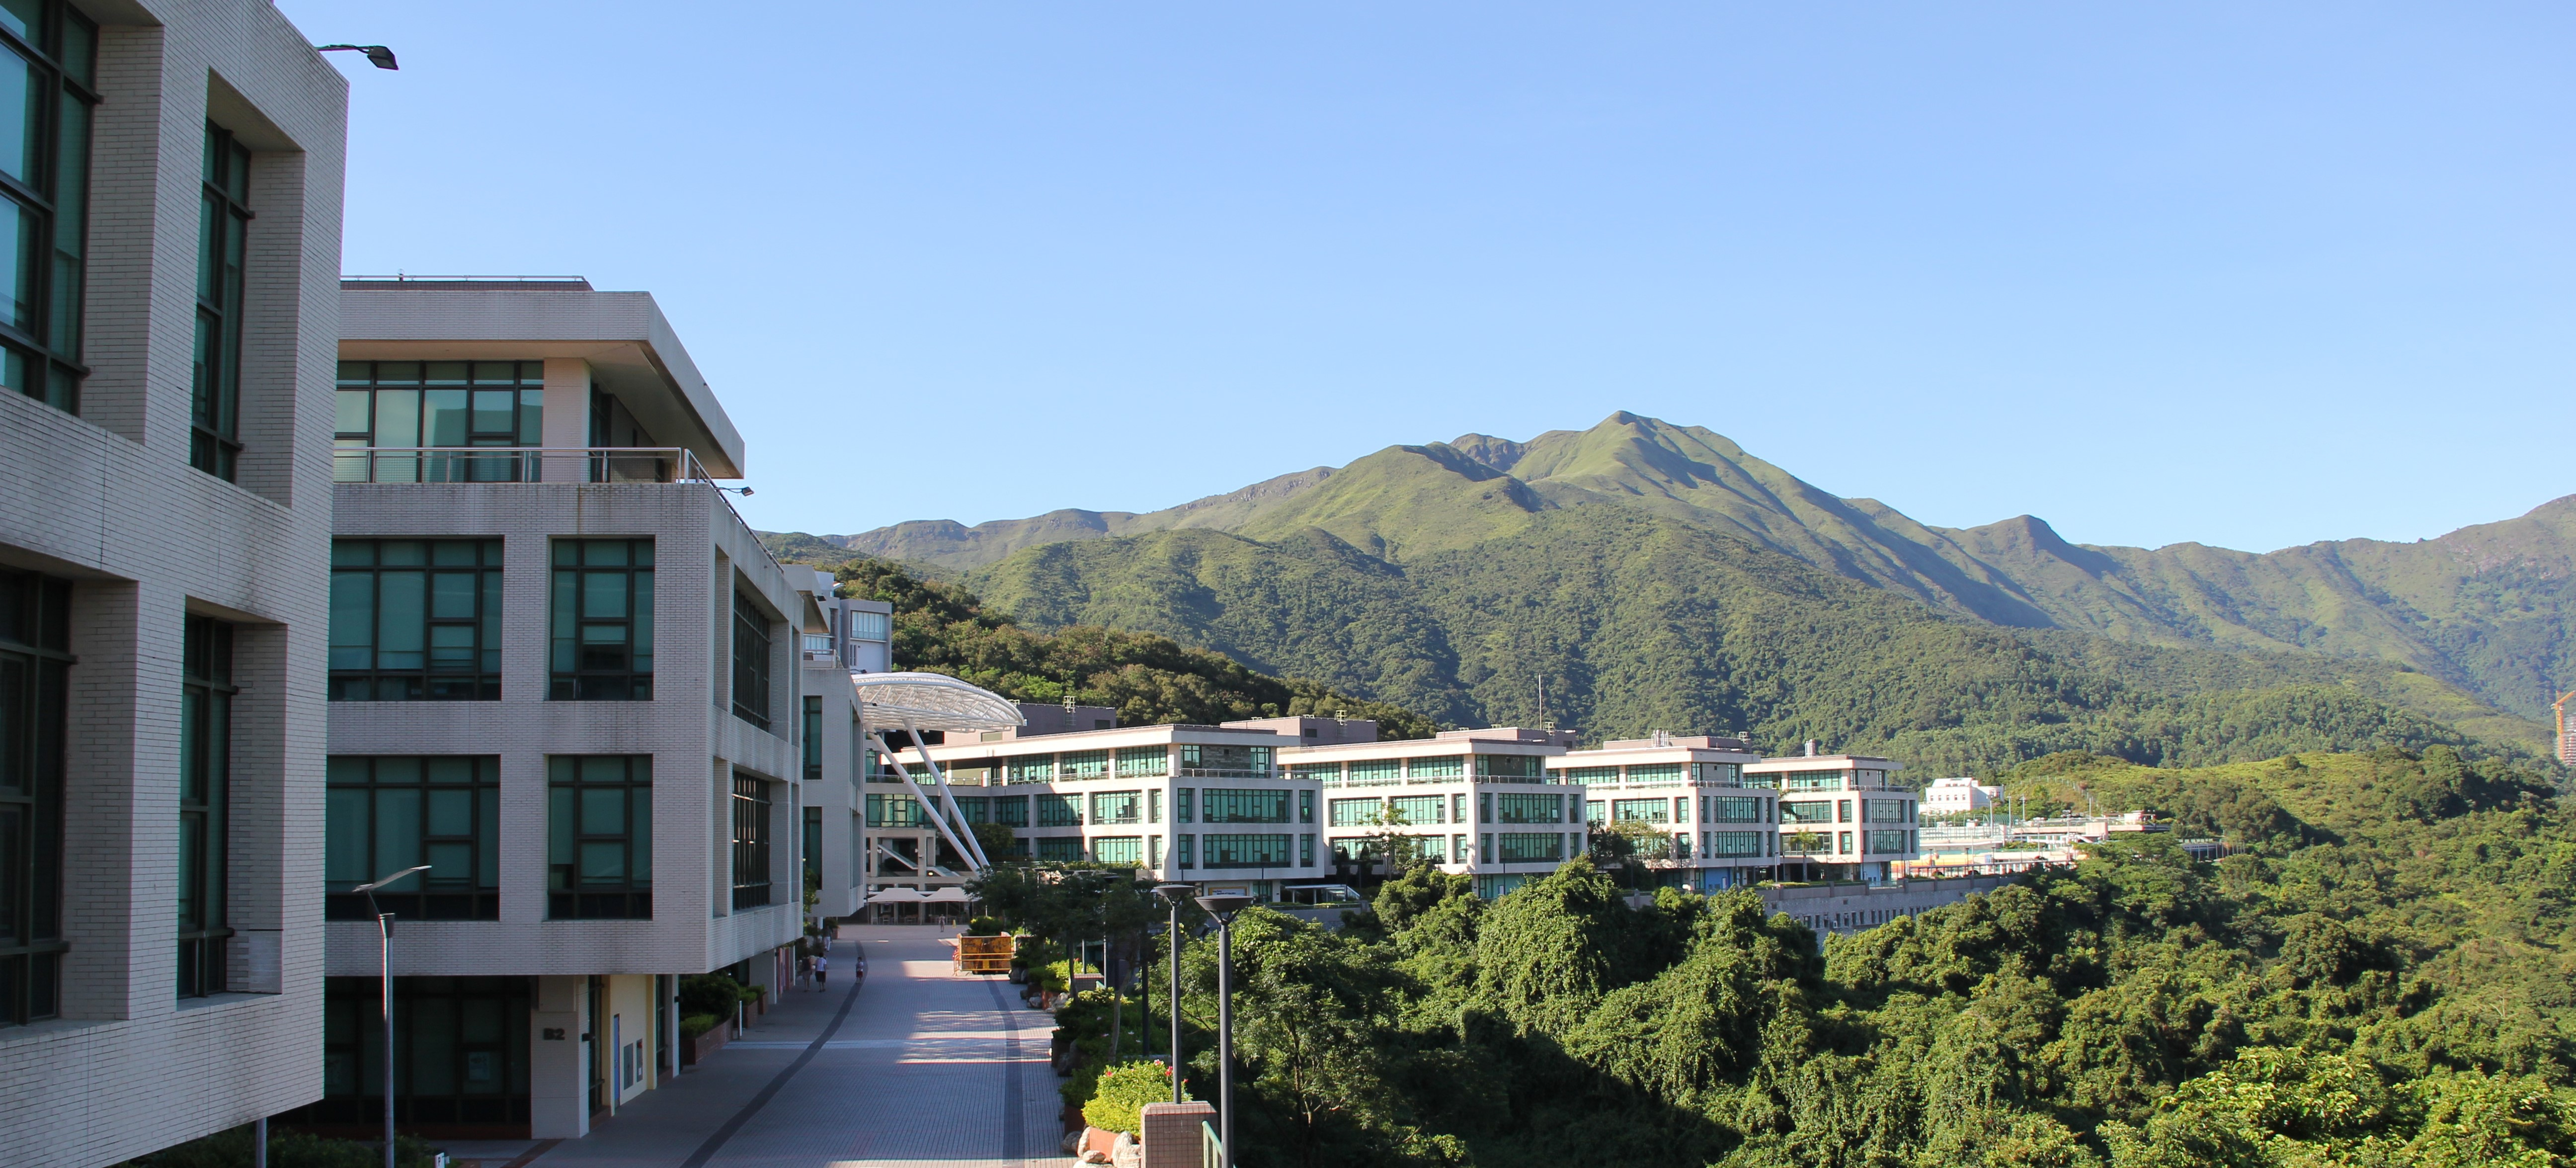 Summer School at Education University of Hong Kong in July 2019